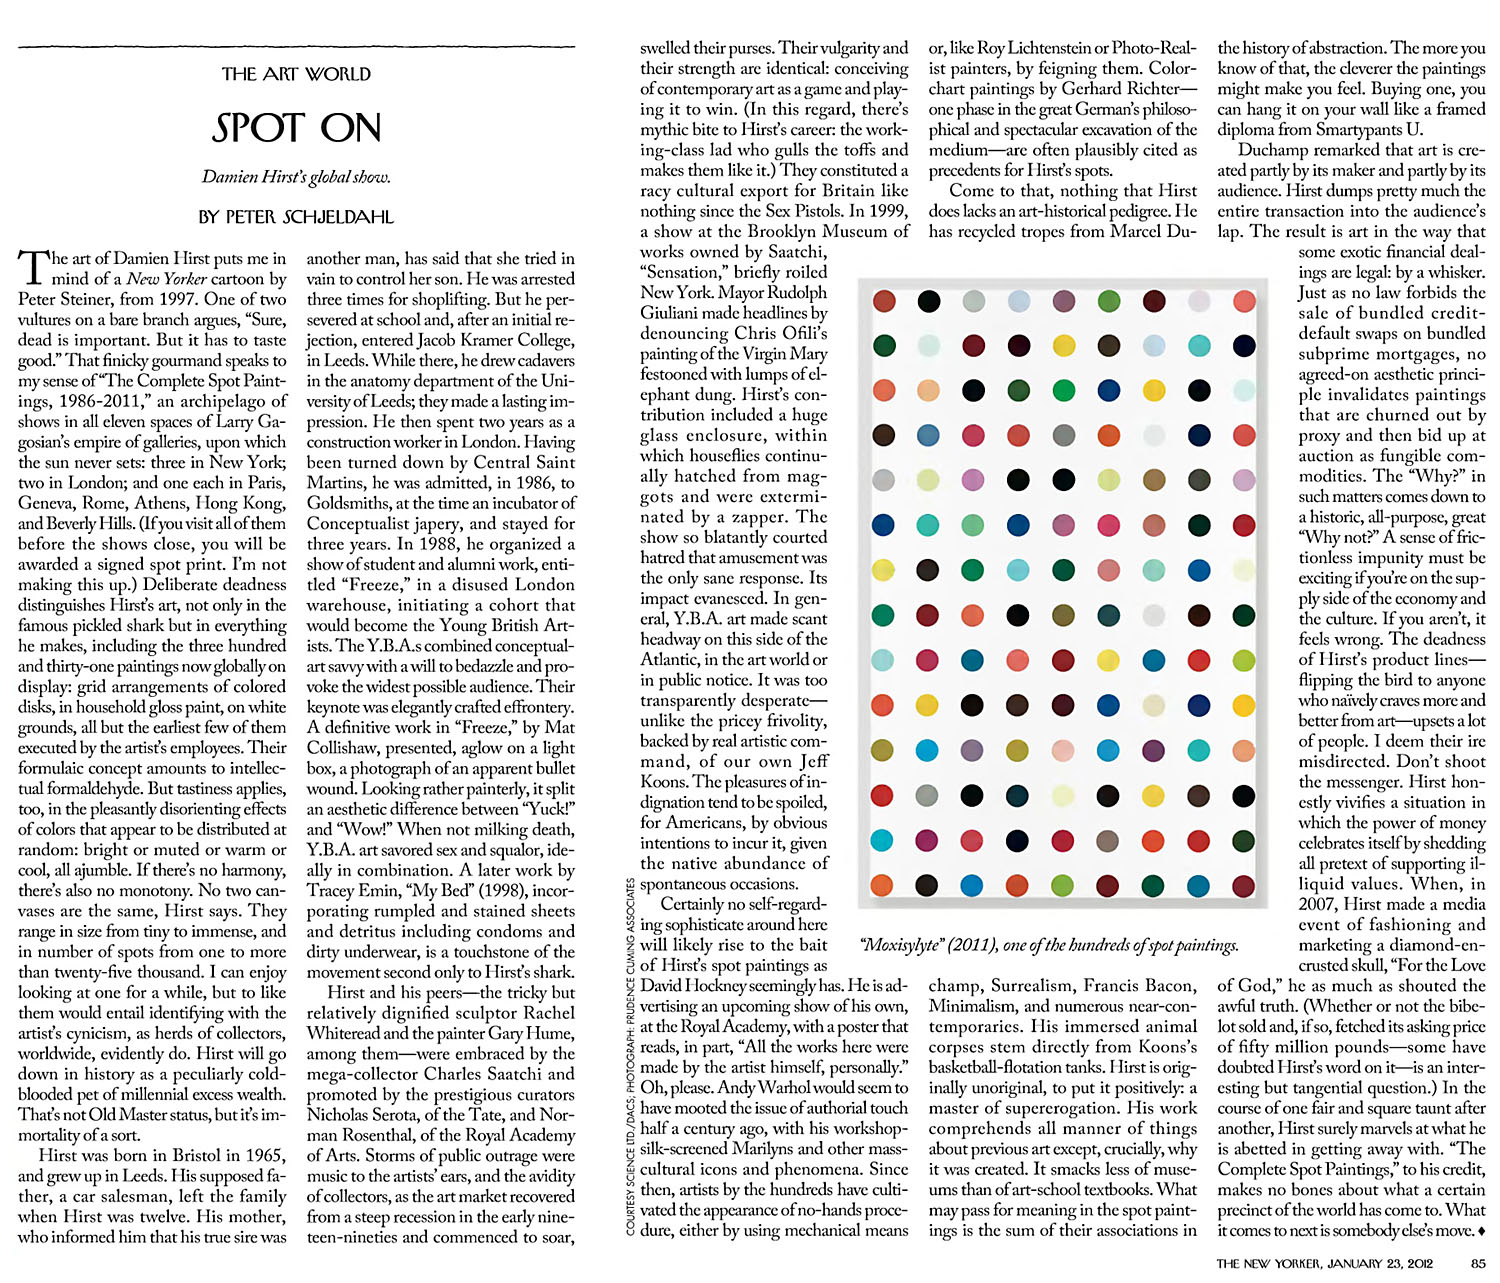 New Yorker's Damien Hirst Spot paintings critique